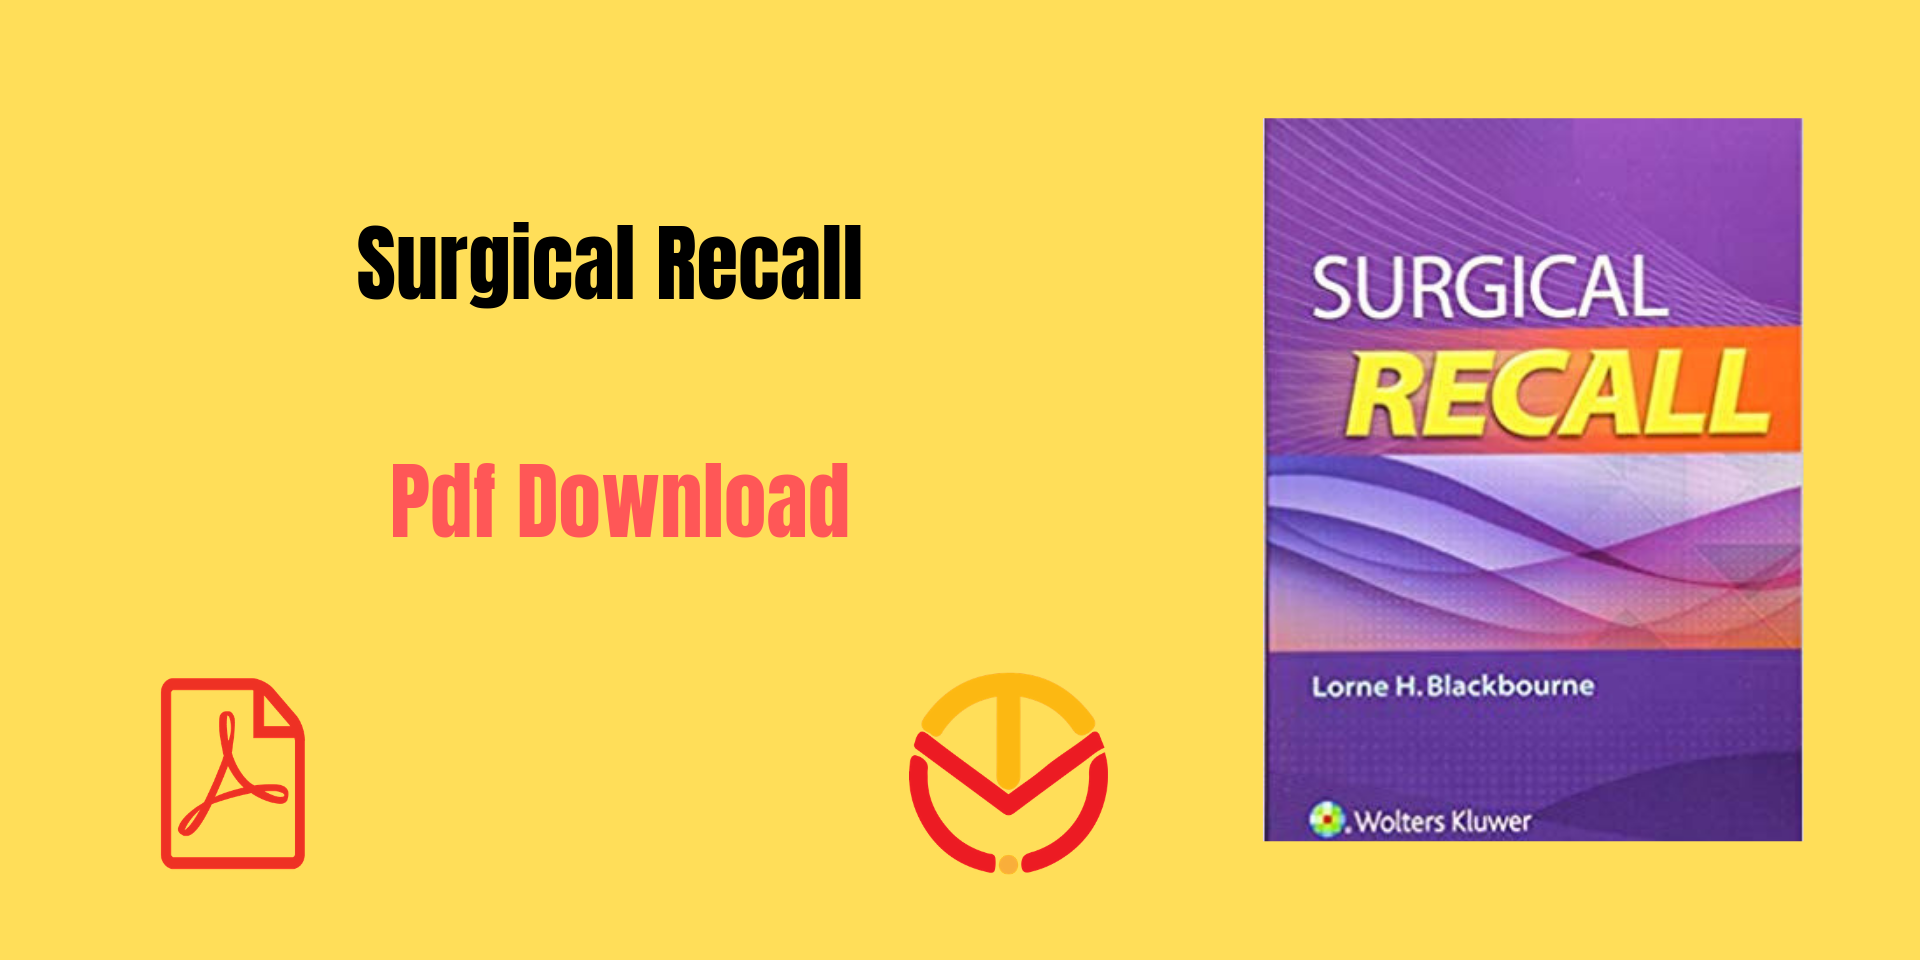 Surgical Recall pdf